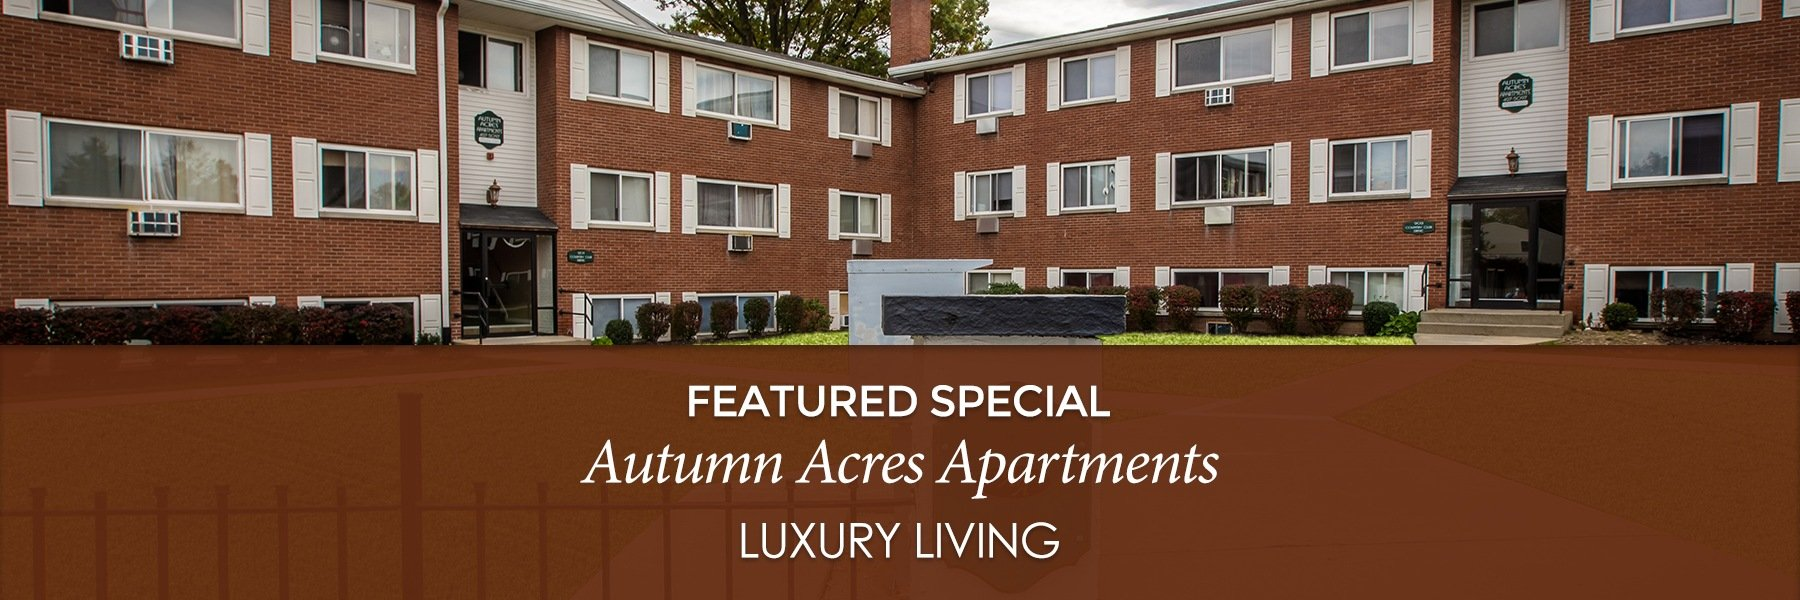 Autumn Acres Apartments For Rent in Maybrook, NY Specials